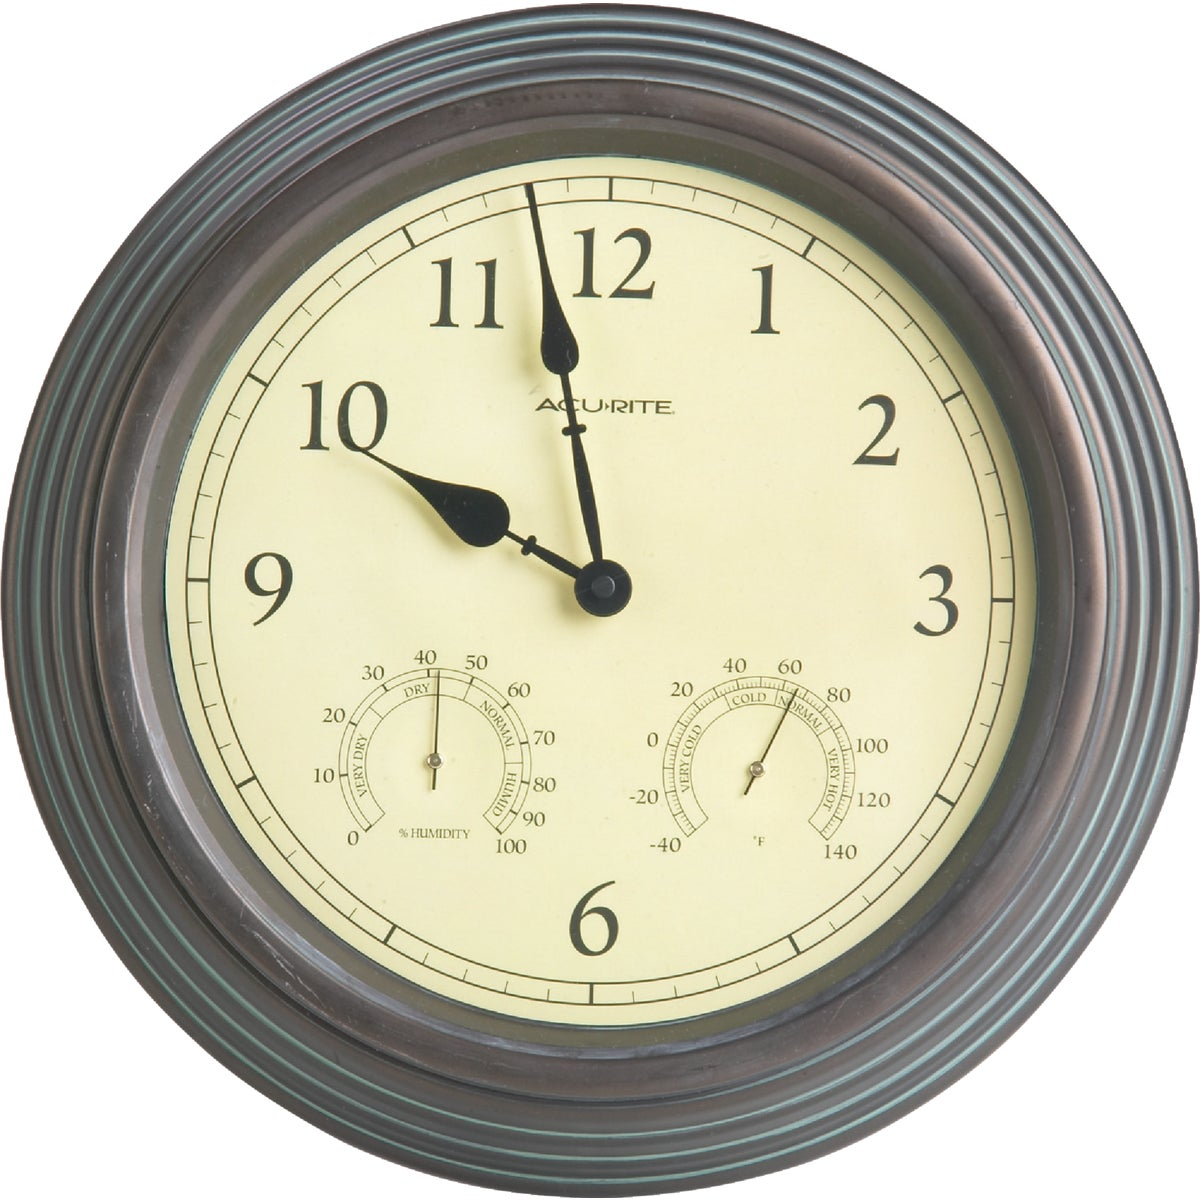 "Item 650242, 15"" indoor/outdoor standard quartz clock with thermometer and hygrometer. Rust-resistant plastic case. Glass lens. Copper patina finish."